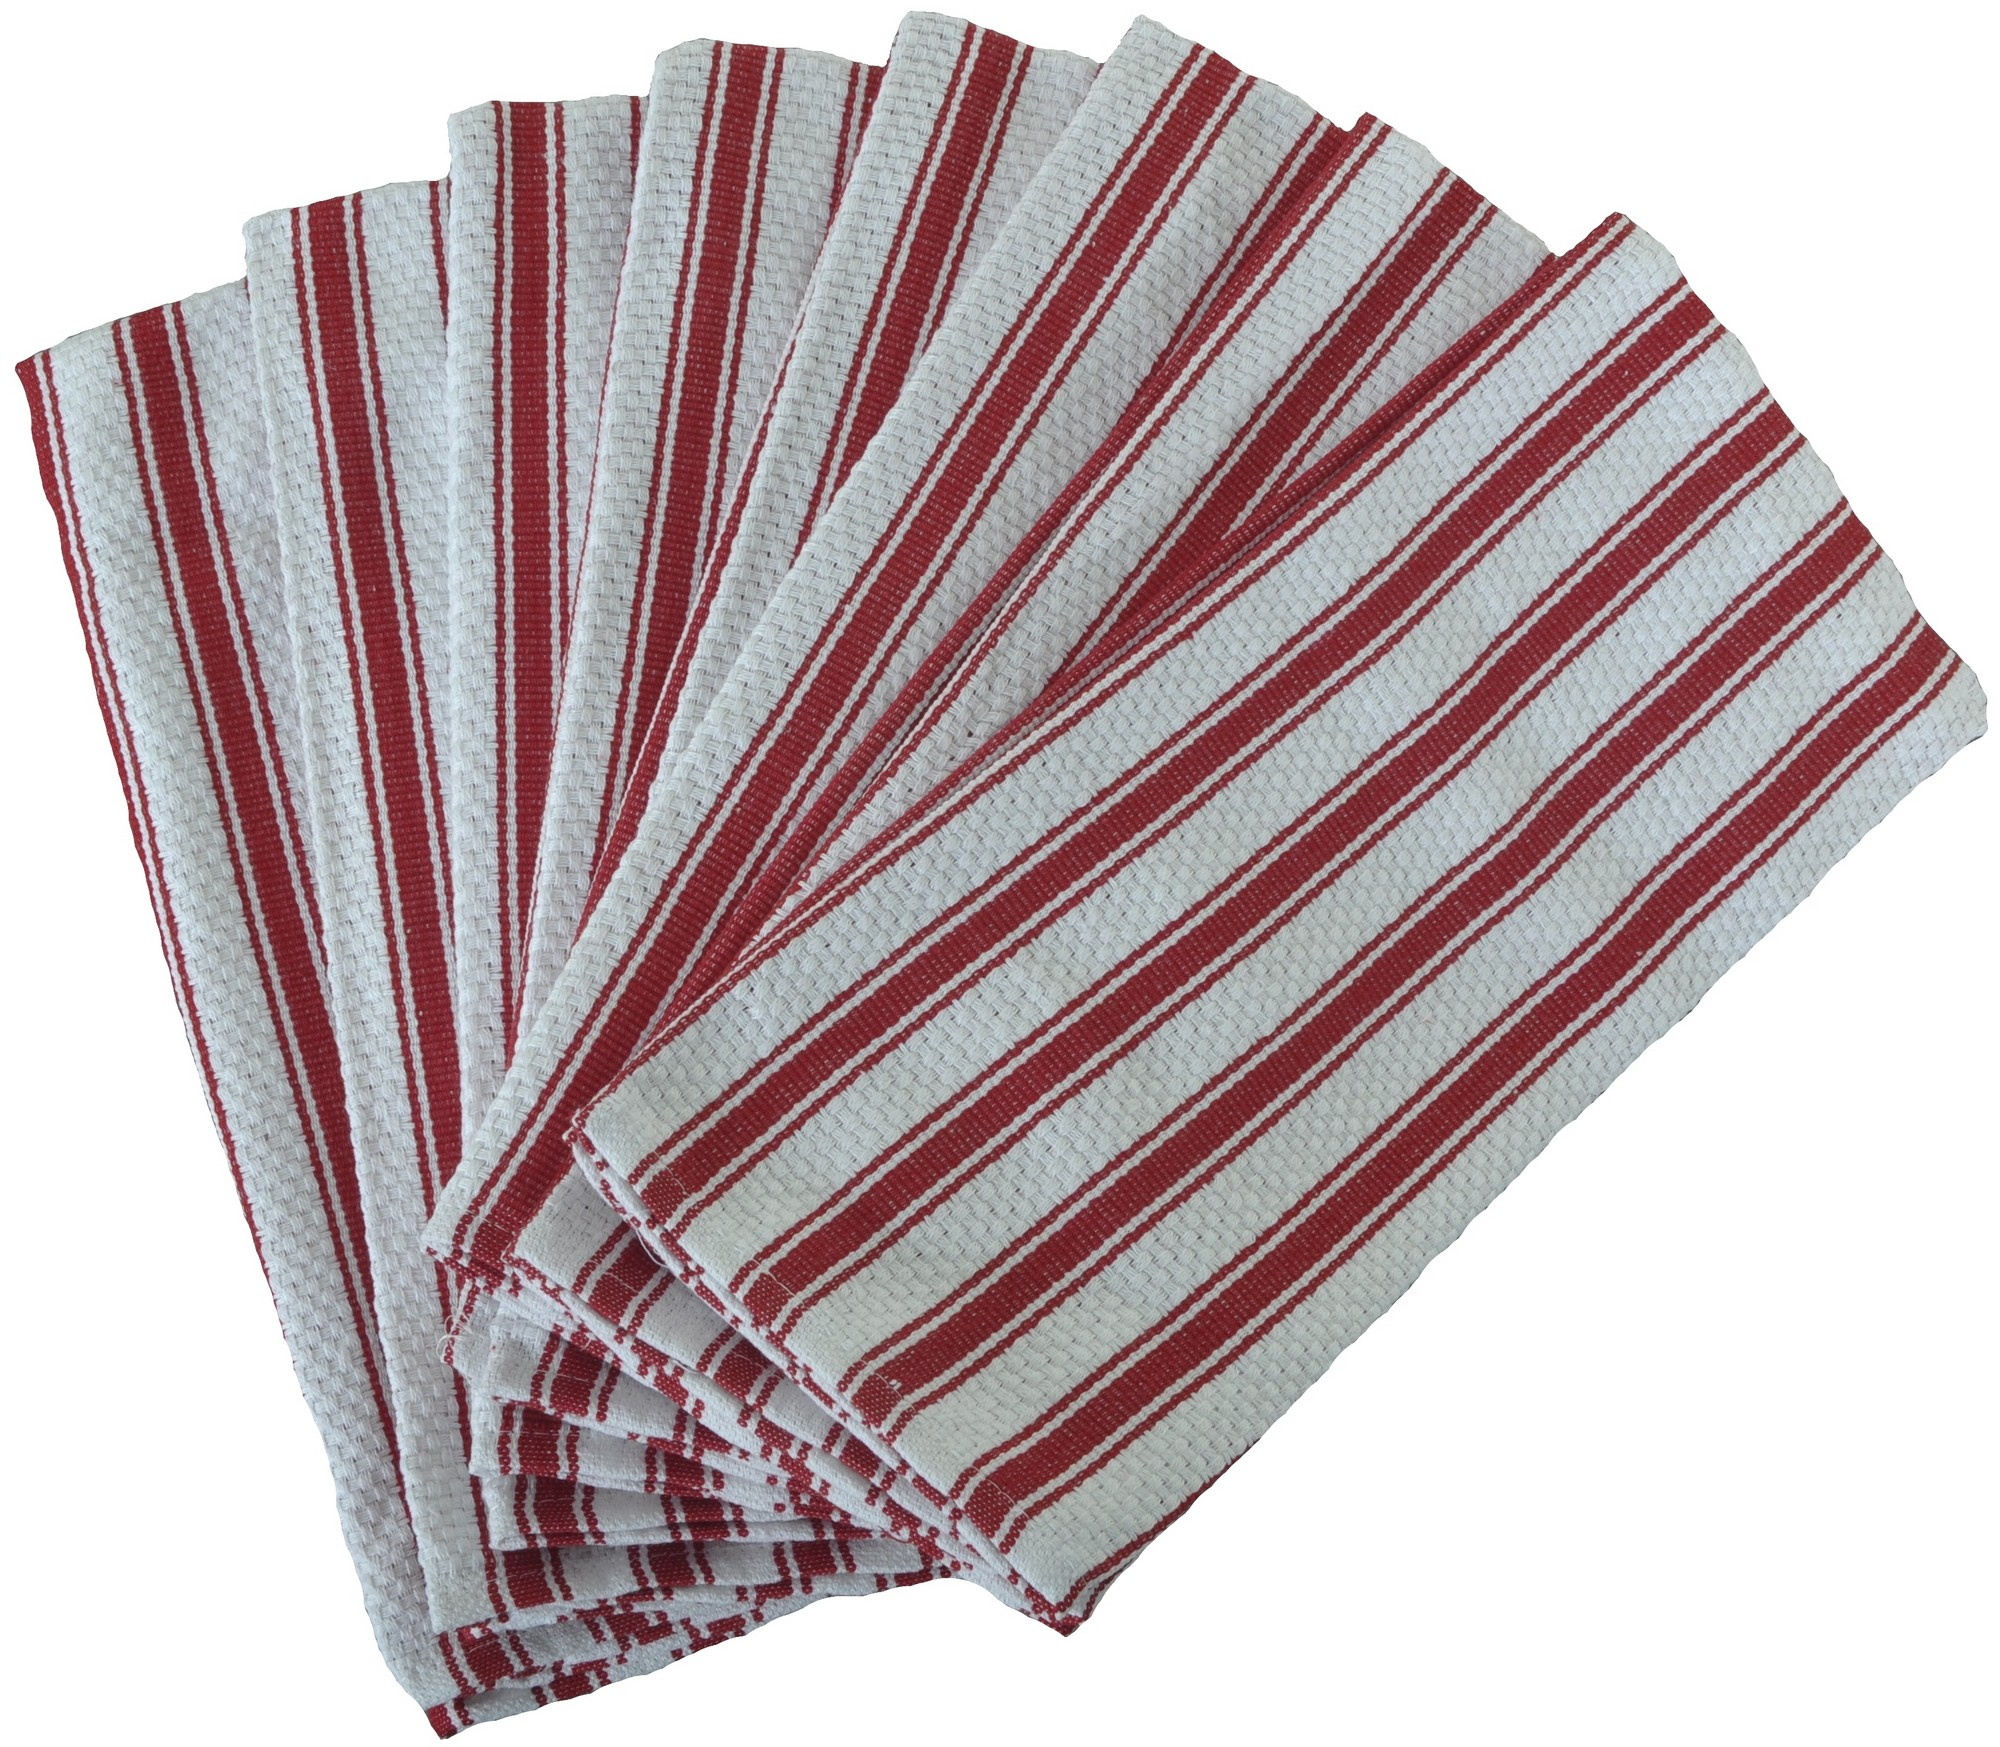 Nouvelle Legende Basketweave Kitchen Towels 19 X 29in (8-Pack) Red by Eurow & O'Reilly Corp.